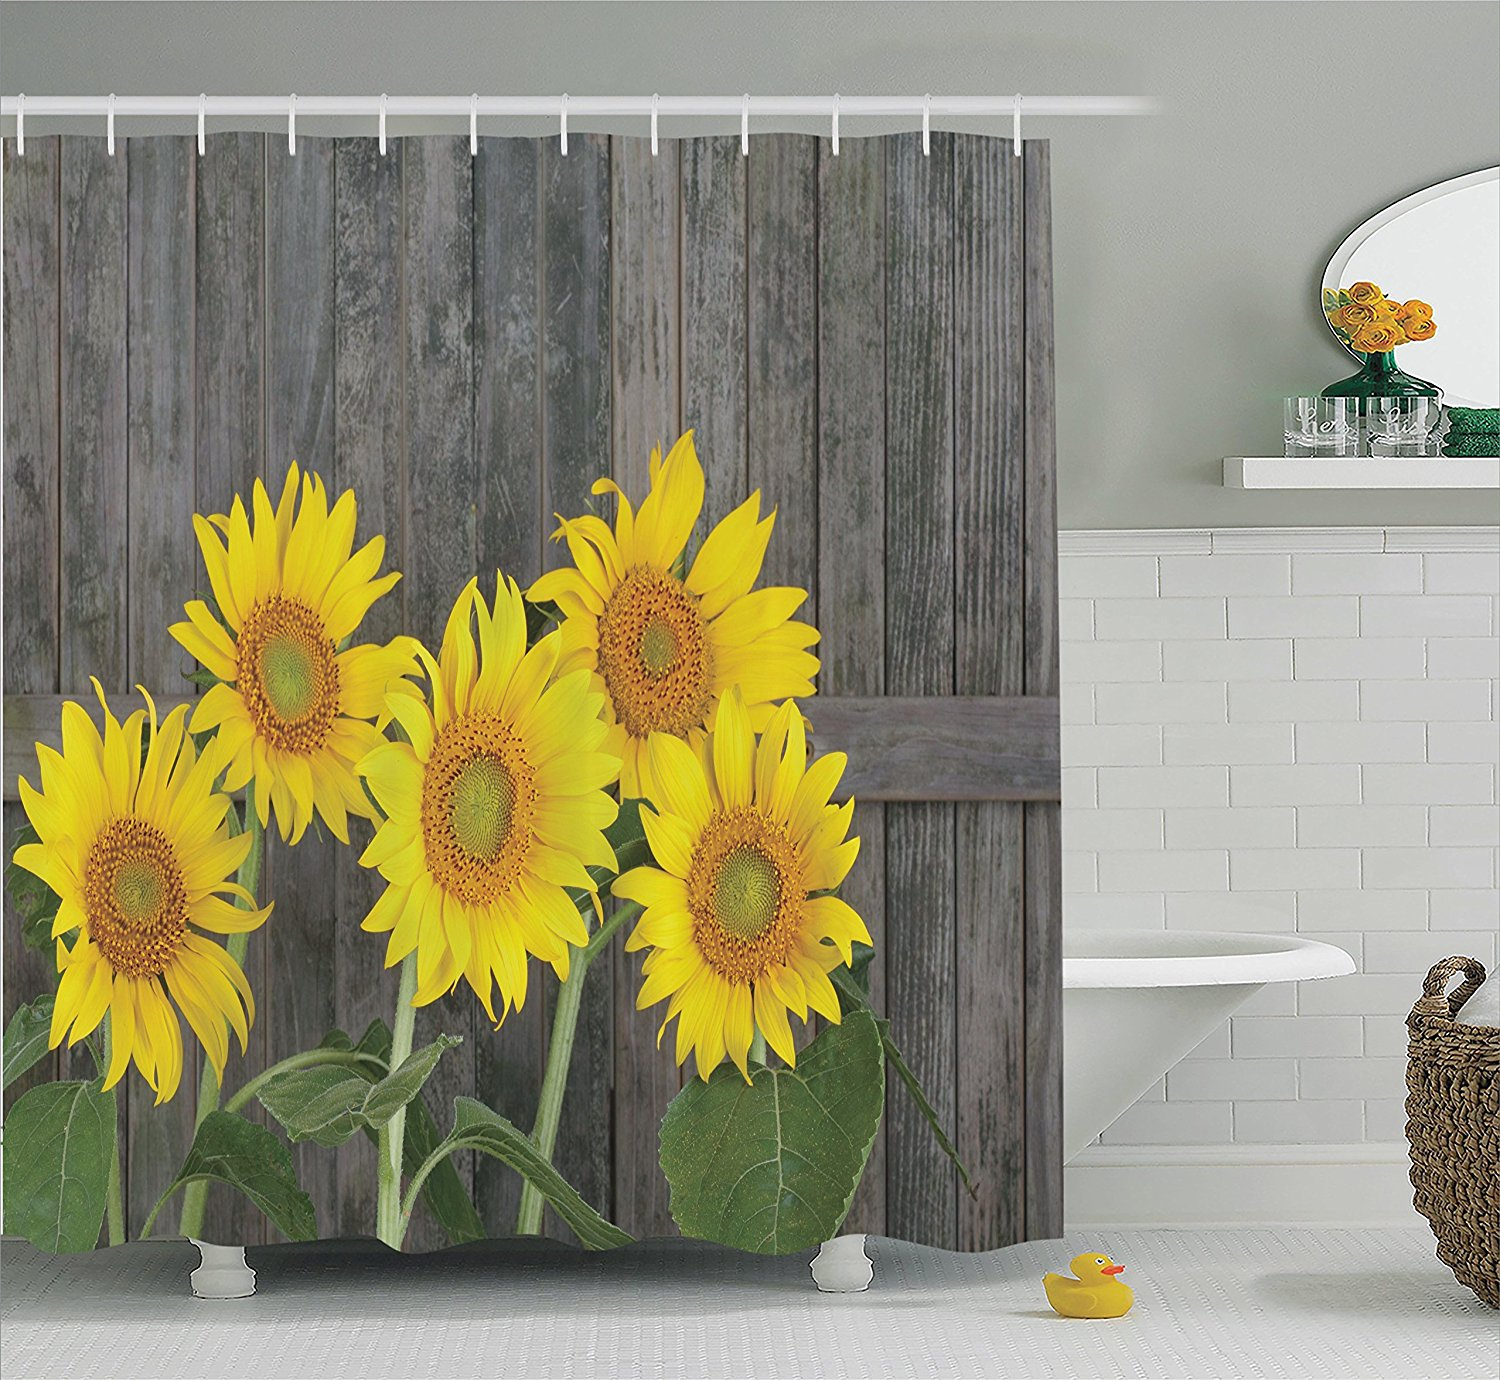 Sunflower shower curtain hooks - Warm Tour Helianthus Sunflowers Fashion Shower Curtain Polyester Curtain Hotel Bathroom With Hooks Ring72 X72 Inch